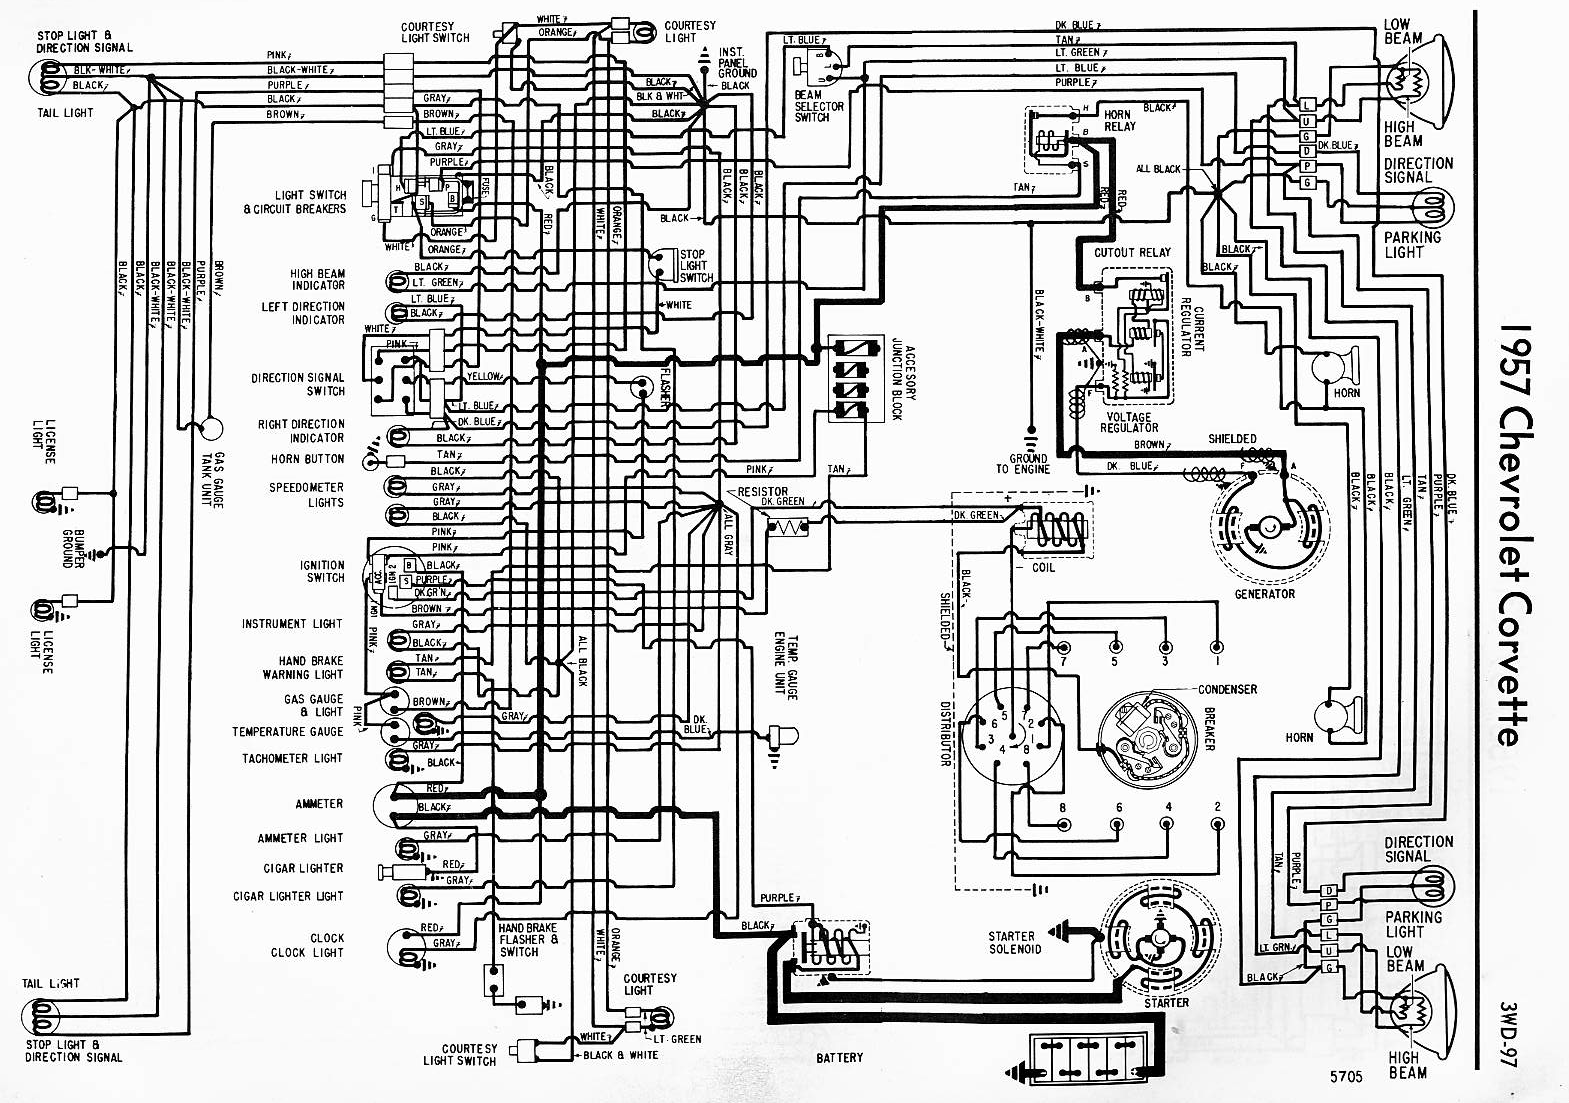 1960 Corvette Wiring Diagram Reinvent Your Superwinch X3 Diagrams Detailed Schematics Rh Keyplusrubber Com 1970 For Alternator